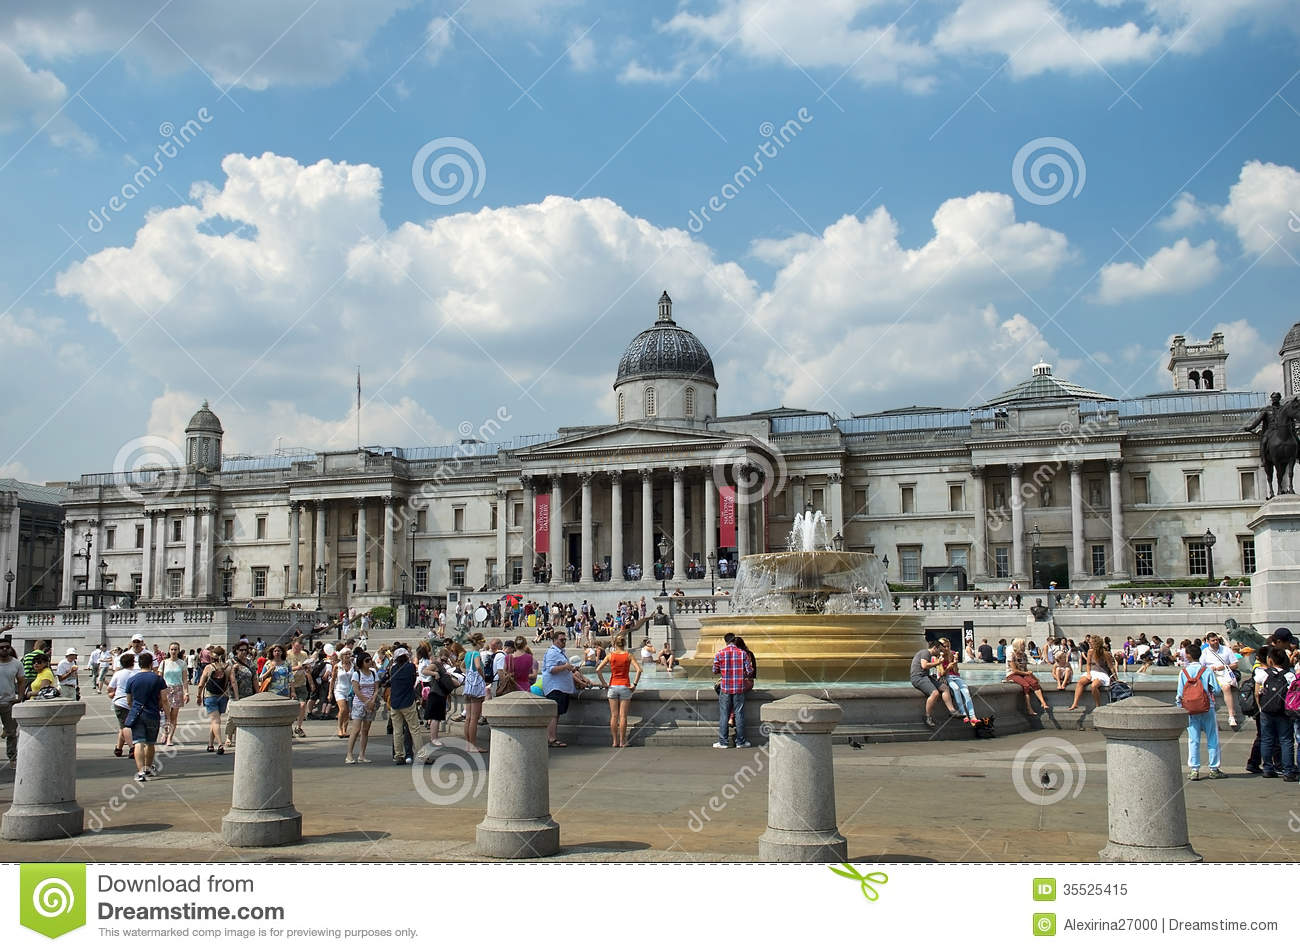 Tourists in front of the national gallery on trafalgar for Time square londra